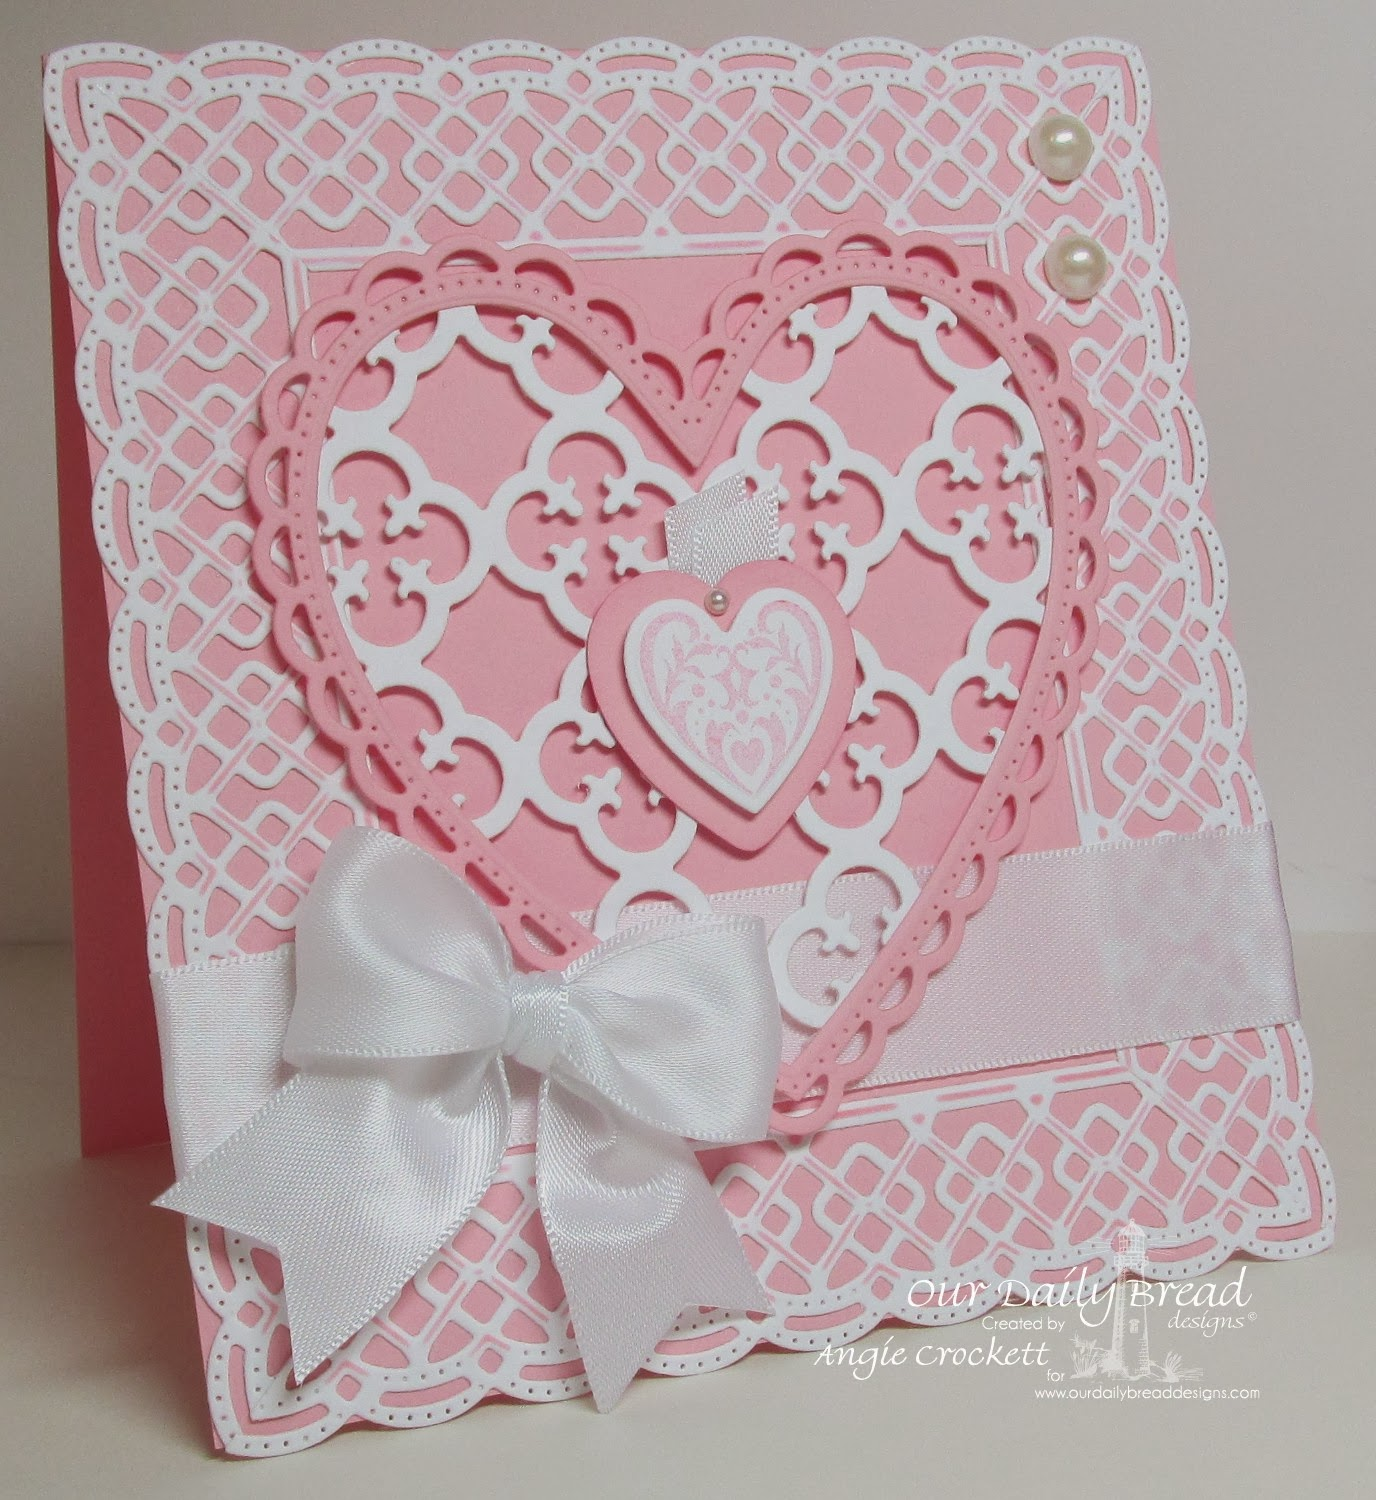 ODBD Custom Ornate Hearts Die Set, ODBD Custom Beautiful Borders Die Set, ODBD Quatrefoil Pattern Die, Bless Your Heart Stamp set, Card Designer Angie Crockett